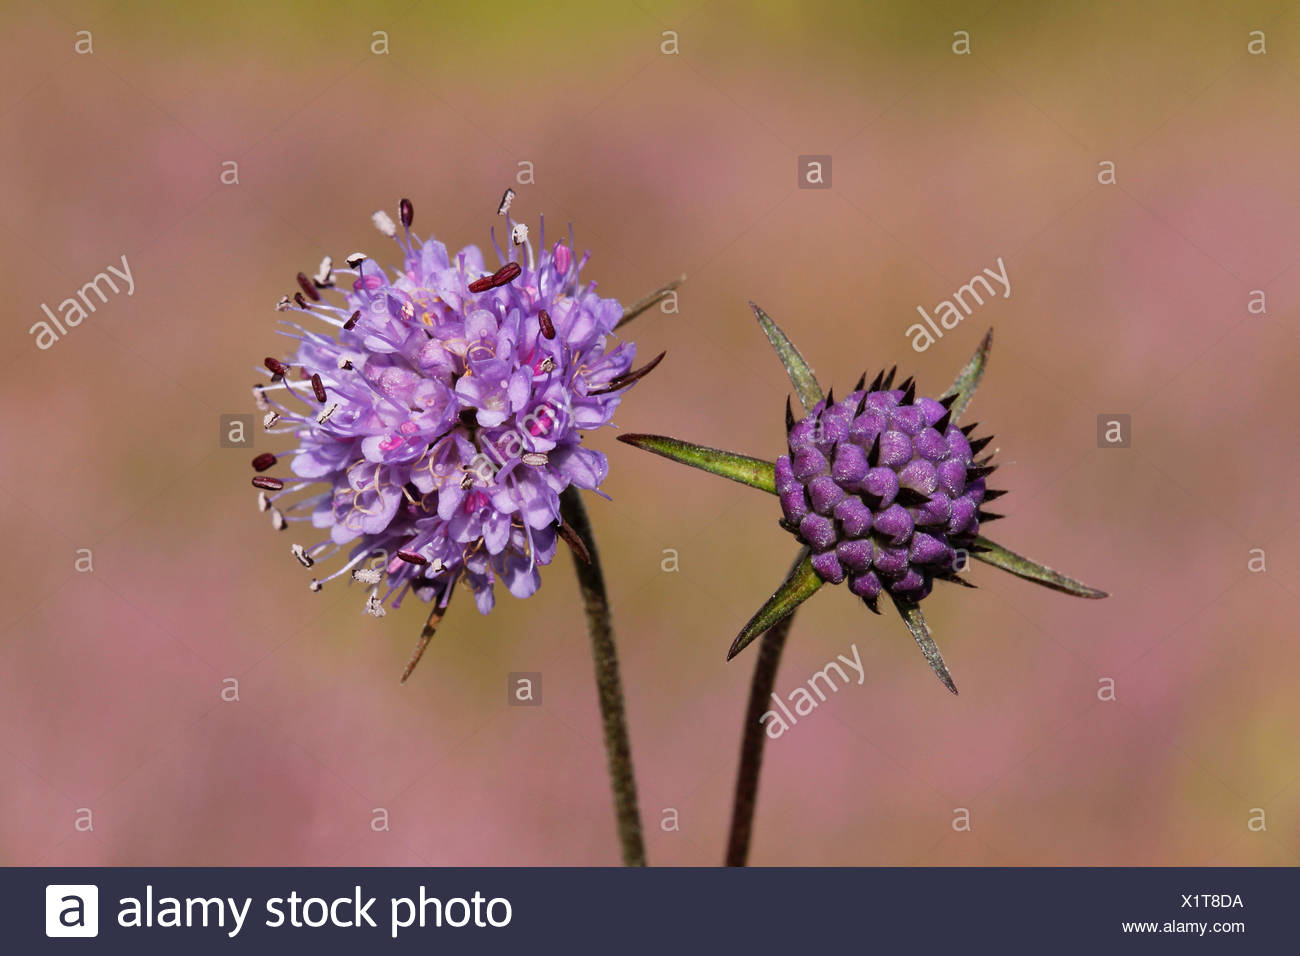 The flowers and buds of the Devil's-bit Scabious have a beautiful lila and blue-purple colour. - Stock Image